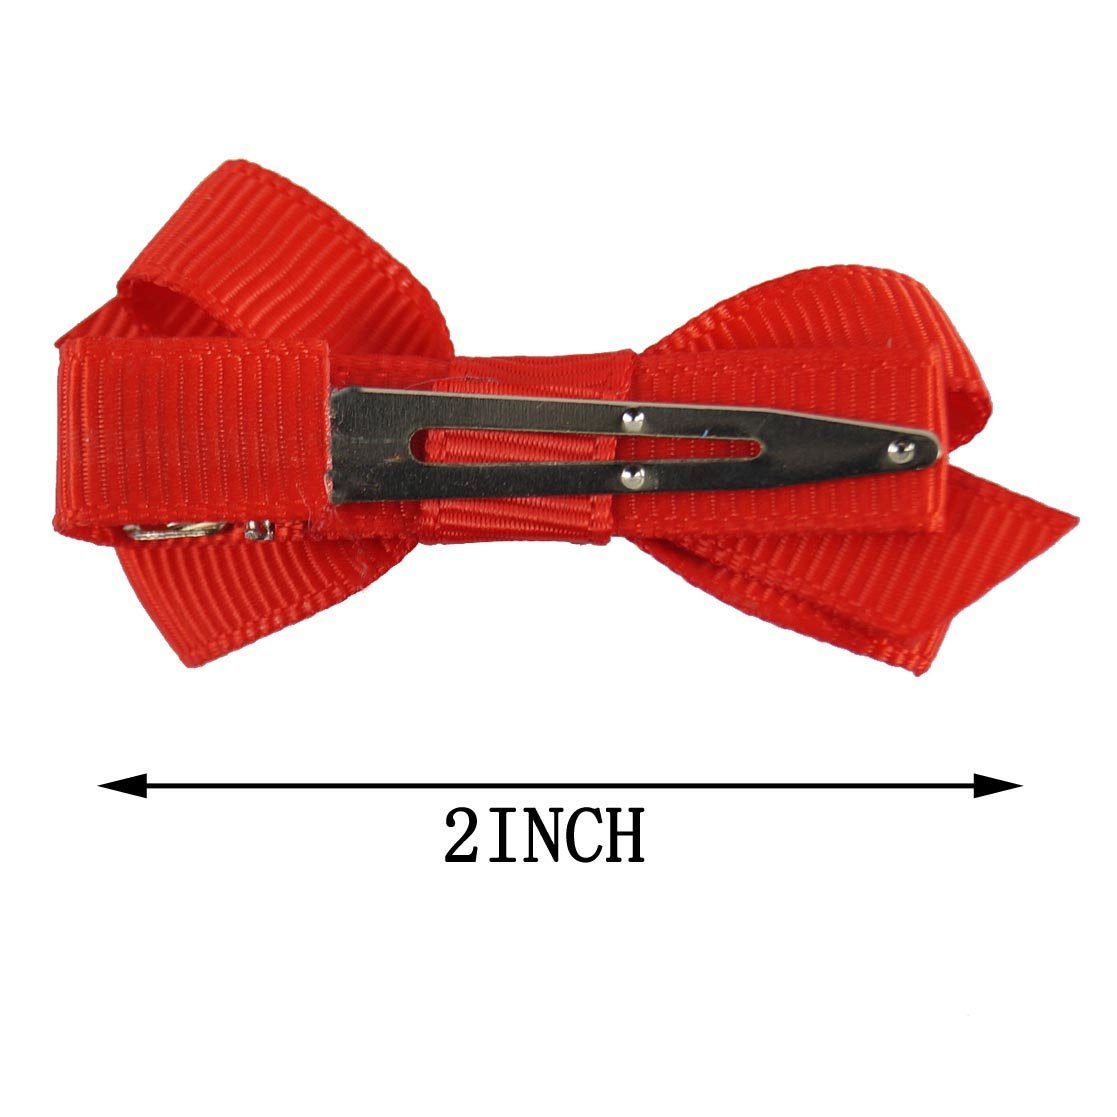 CN Boutique Baby Girls Hair Bows Alligator Clips Grosgrain Ribbon Barrettes For Teens Kids Toddlers 15 Colors 30pcs by C.N. (Image #2)